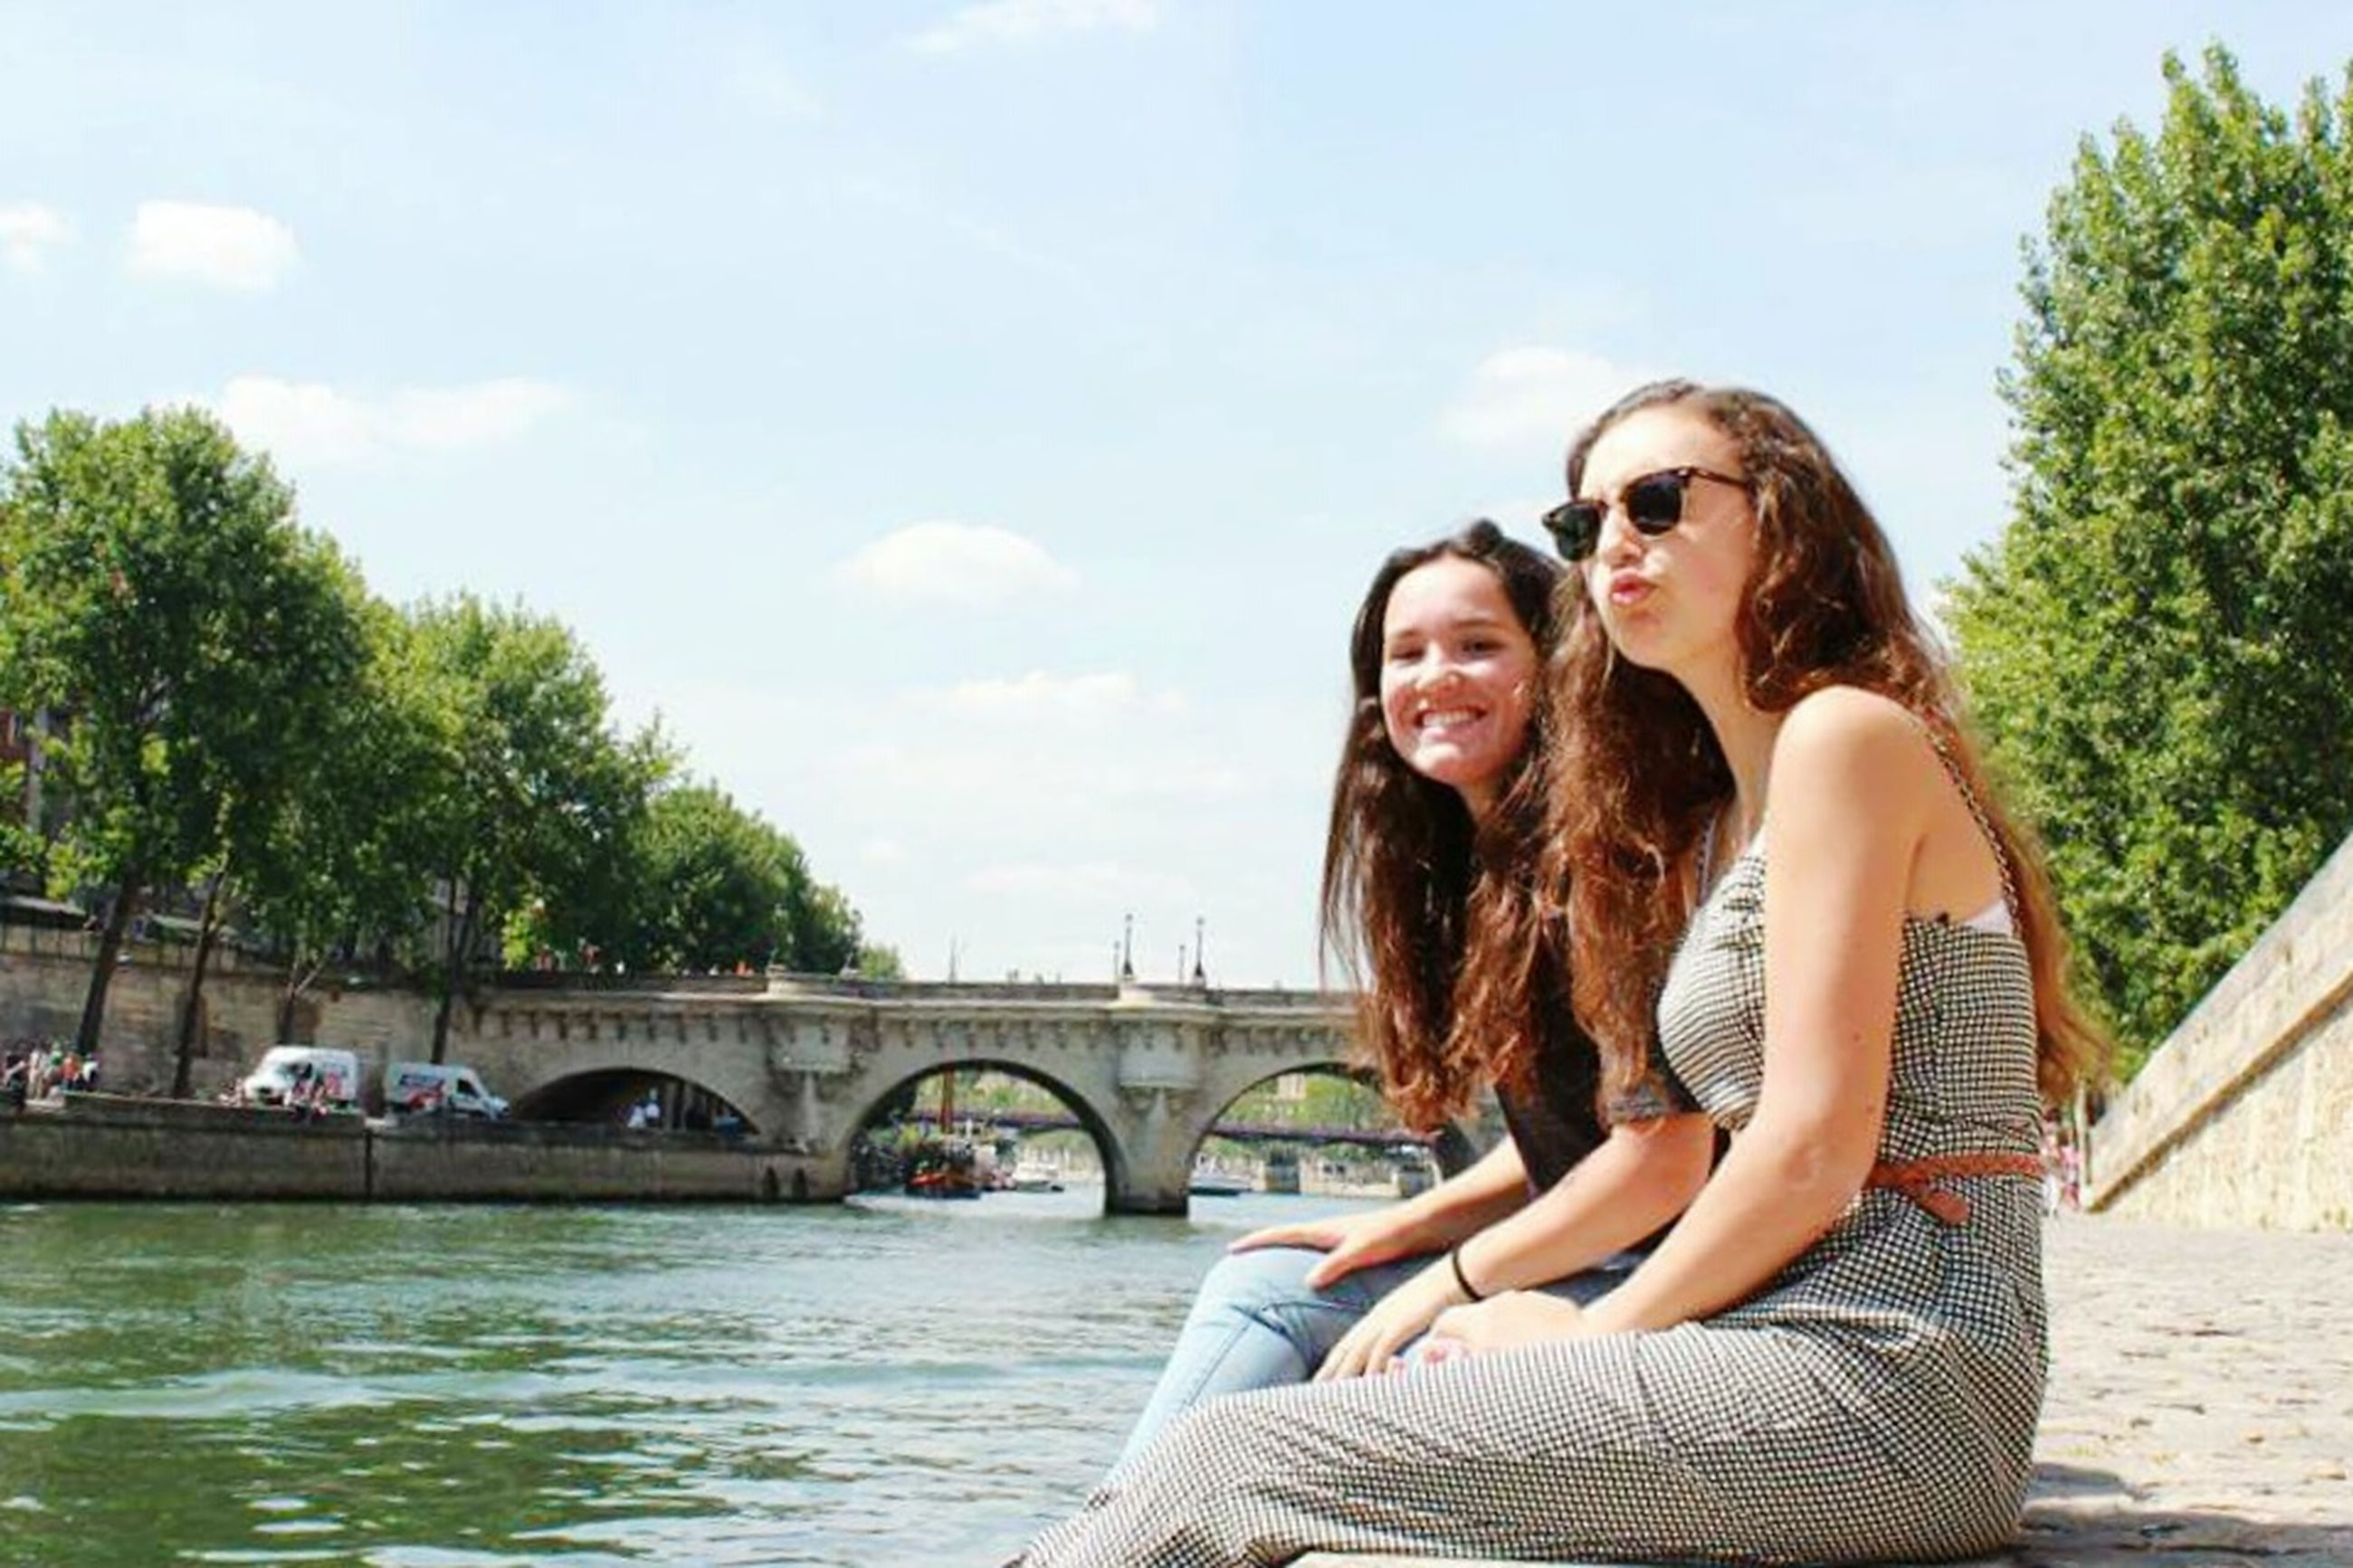 young adult, young women, water, person, lifestyles, leisure activity, casual clothing, looking at camera, tree, smiling, portrait, sunglasses, full length, sitting, sky, long hair, river, happiness